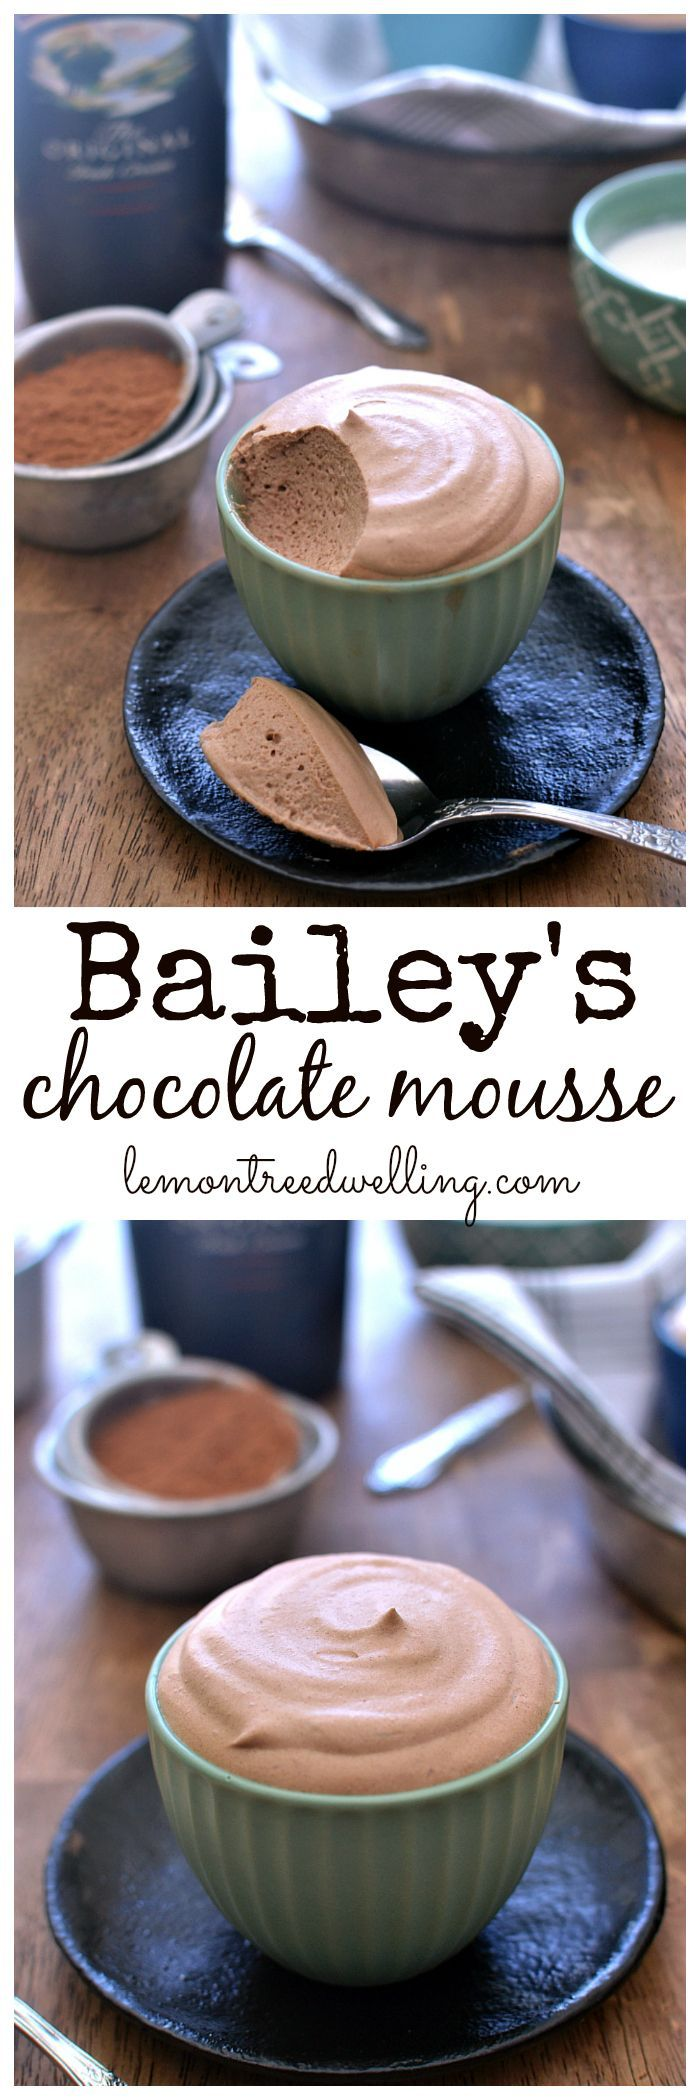 Recipe jordan   Chocolate Chocolates   air Day Mousse  Bailey     s St  Patrick     s Mousse sizes and